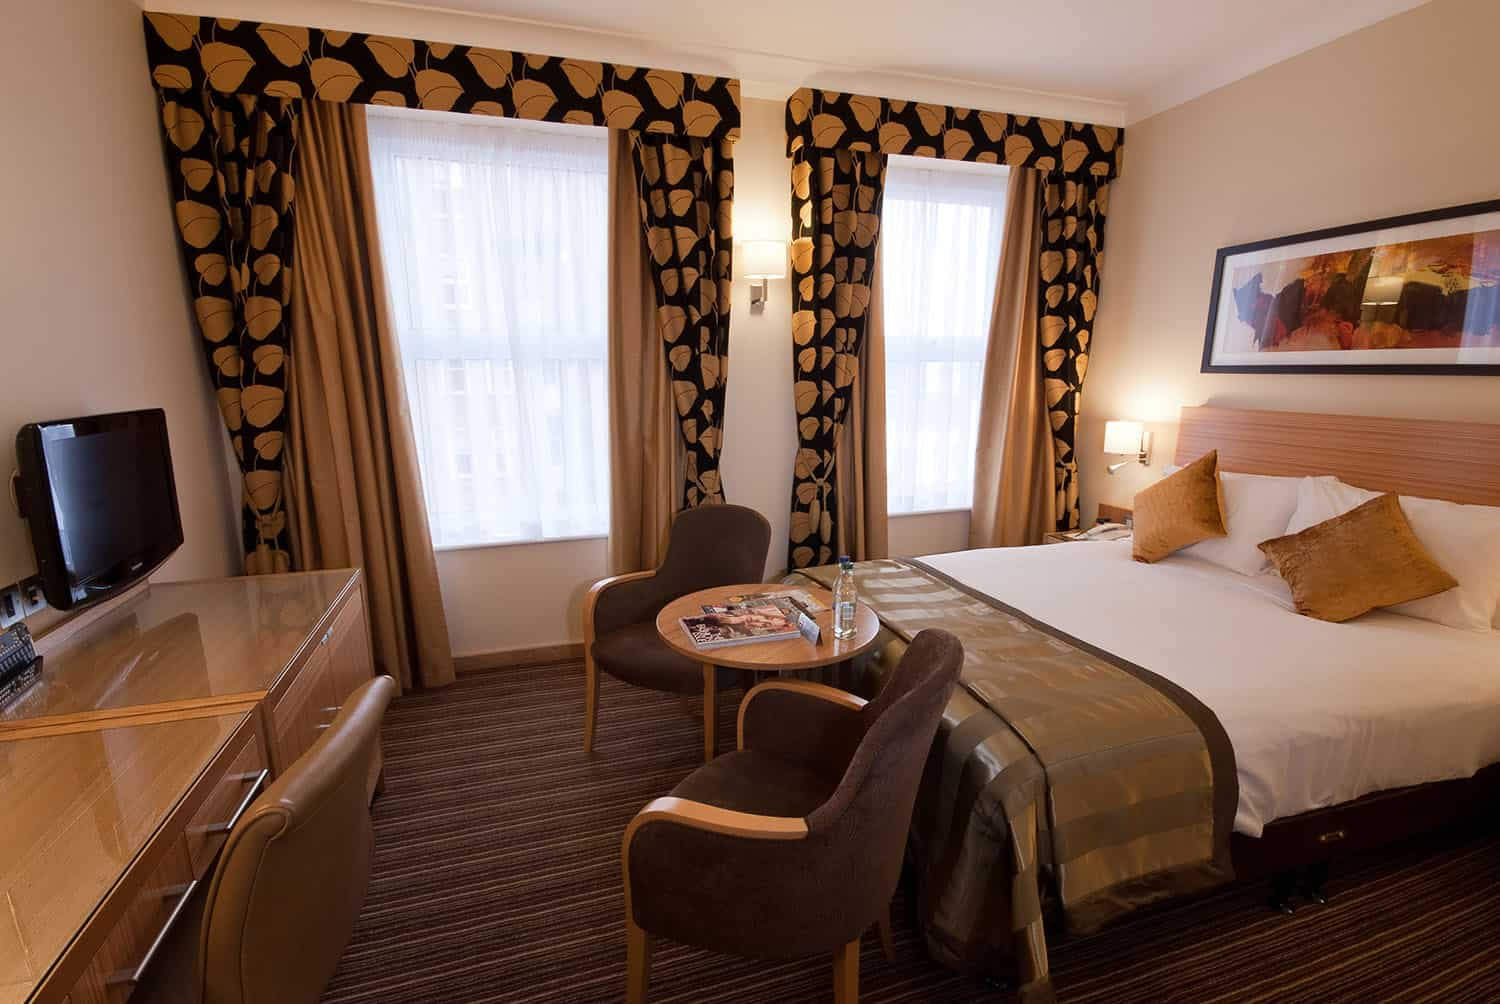 Hotel Bedroom Sizes Uk Executive Rooms The Rembrandt Hotel Knightsbridge London